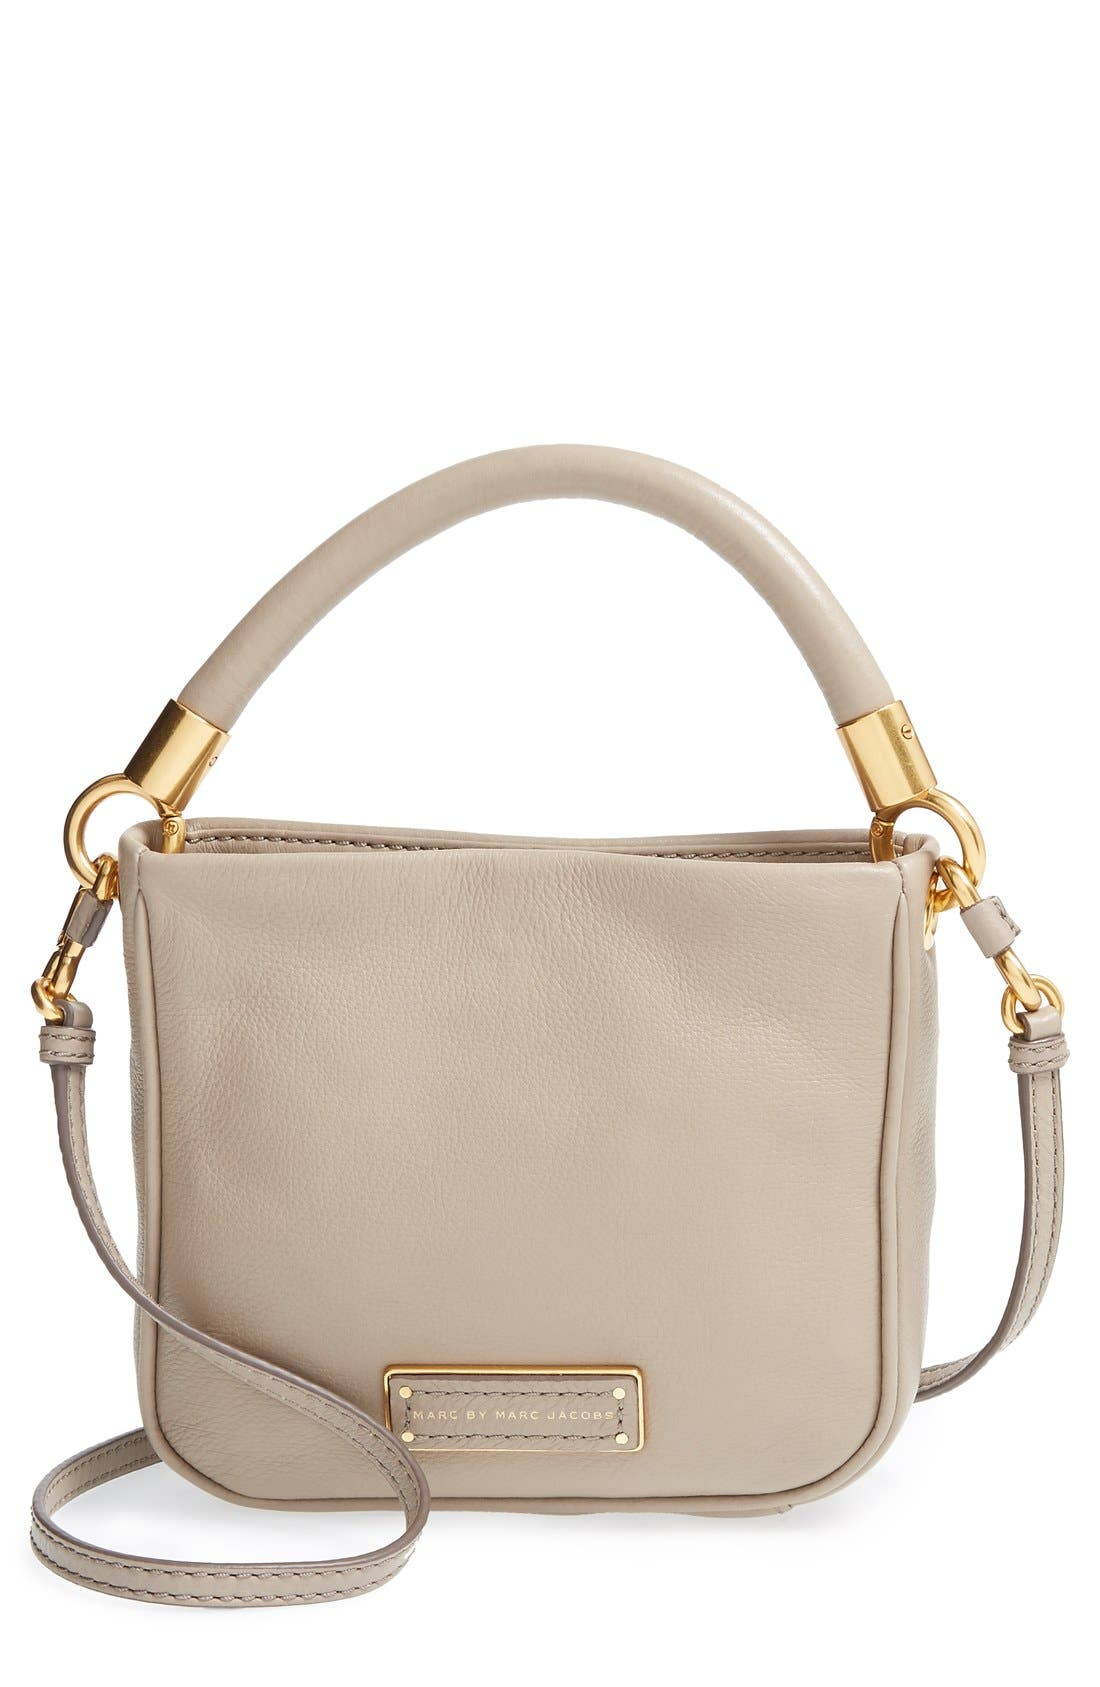 Alternate Image 1 Selected - MARC BY MARC JACOBS 'Too Hot to Handle' Crossbody Bag